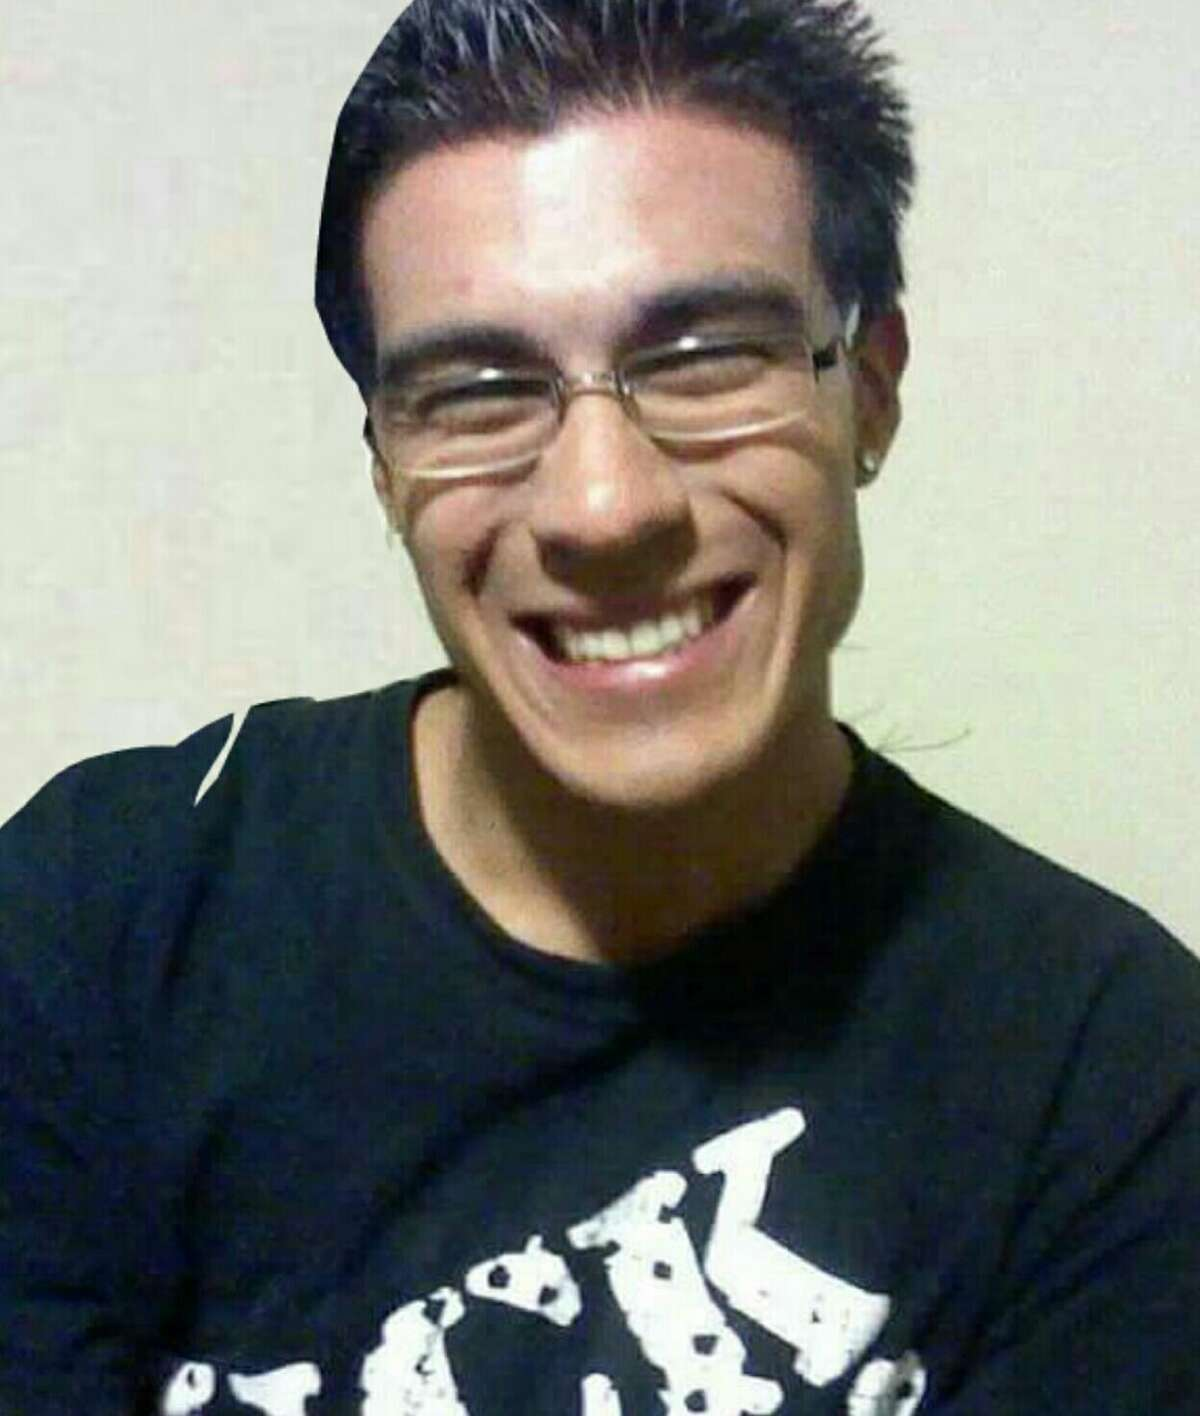 """Benjamin Ian Garza, also known as """"Wicked J,"""" died April 12. He was 26."""